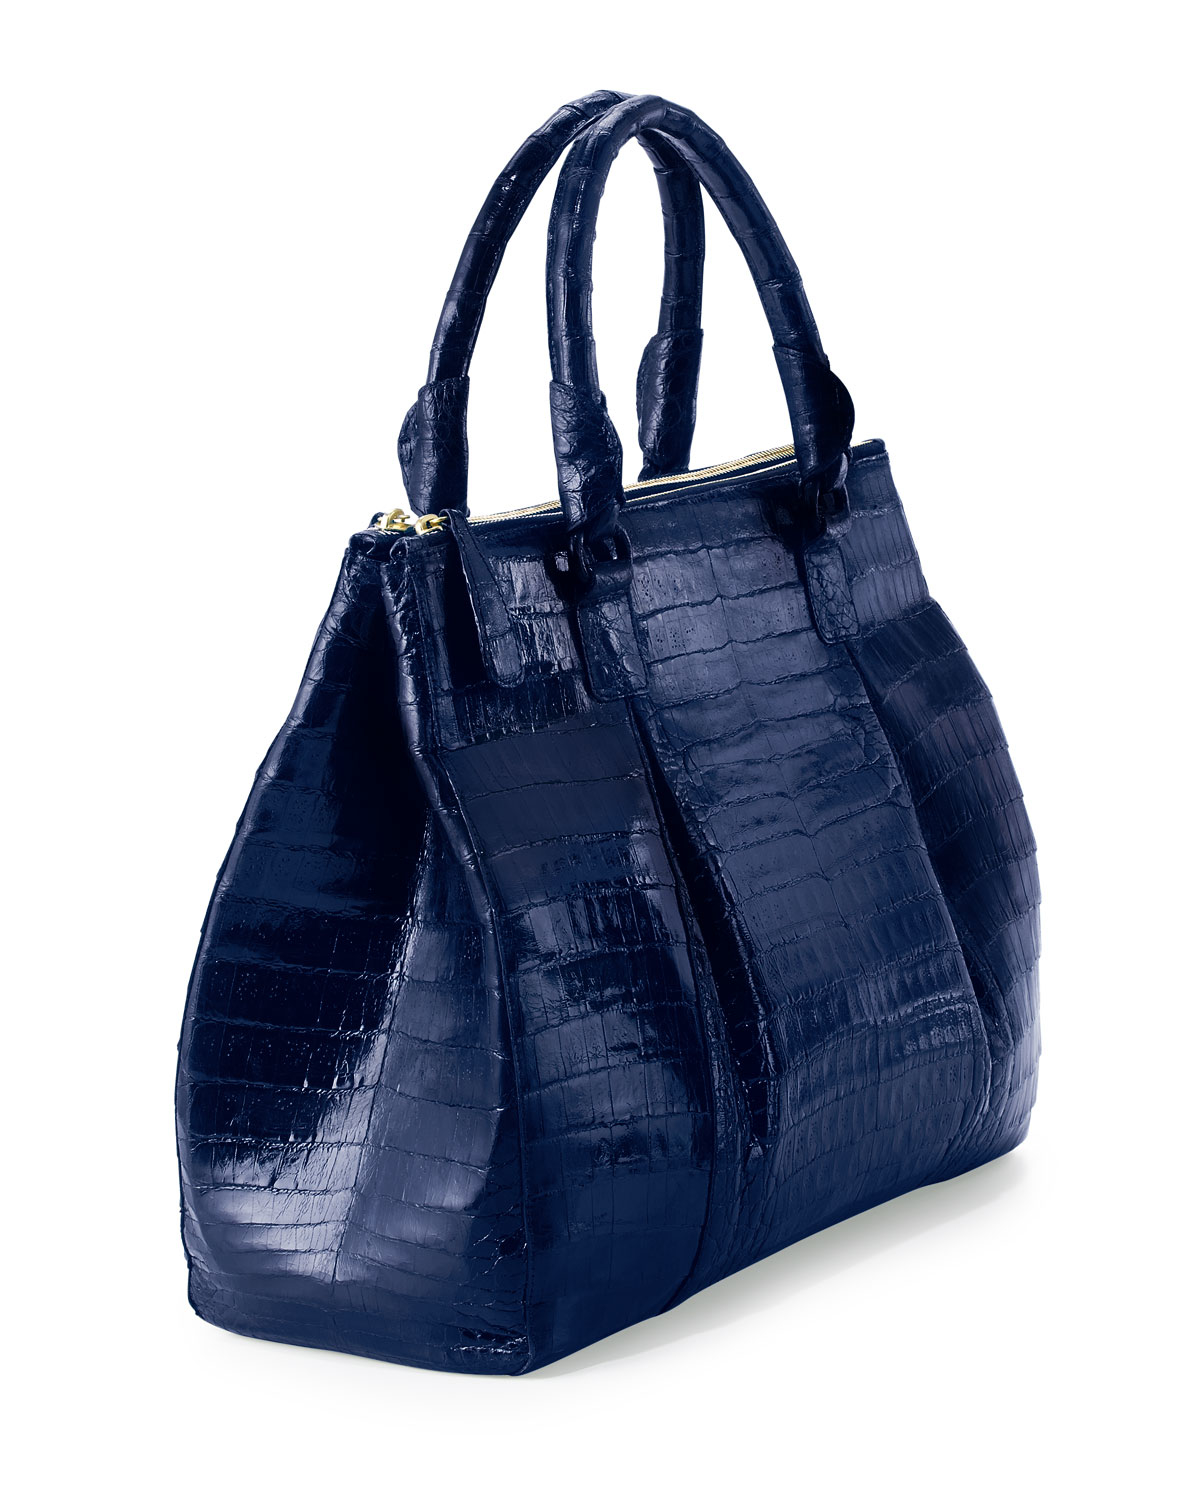 Nancy gonzalez plisse large crocodile tote bag in blue lyst for Nancy gonzalez crocodile tote